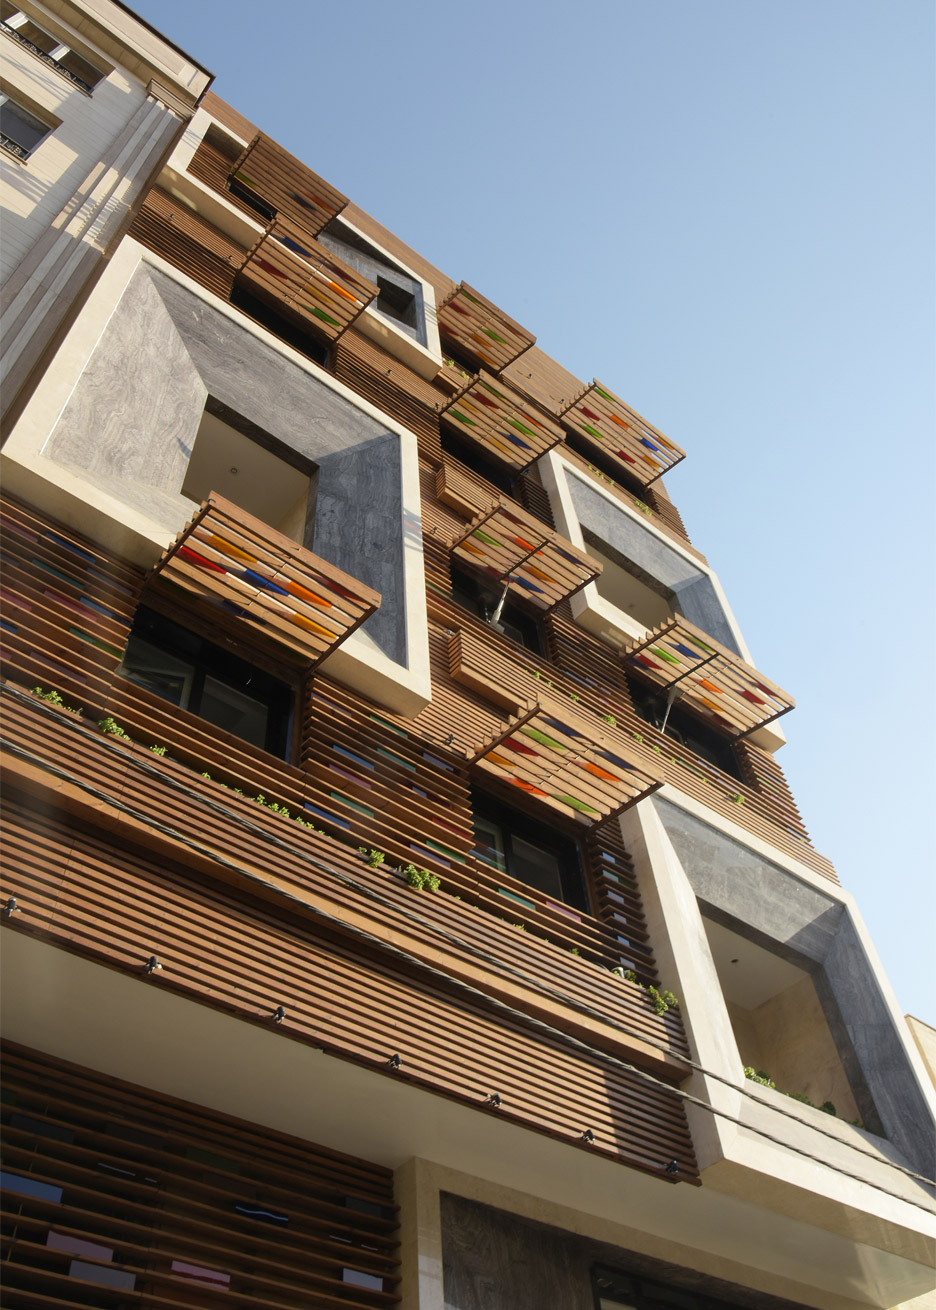 Tehran apartment block by Keivani Architects has stained glass windows